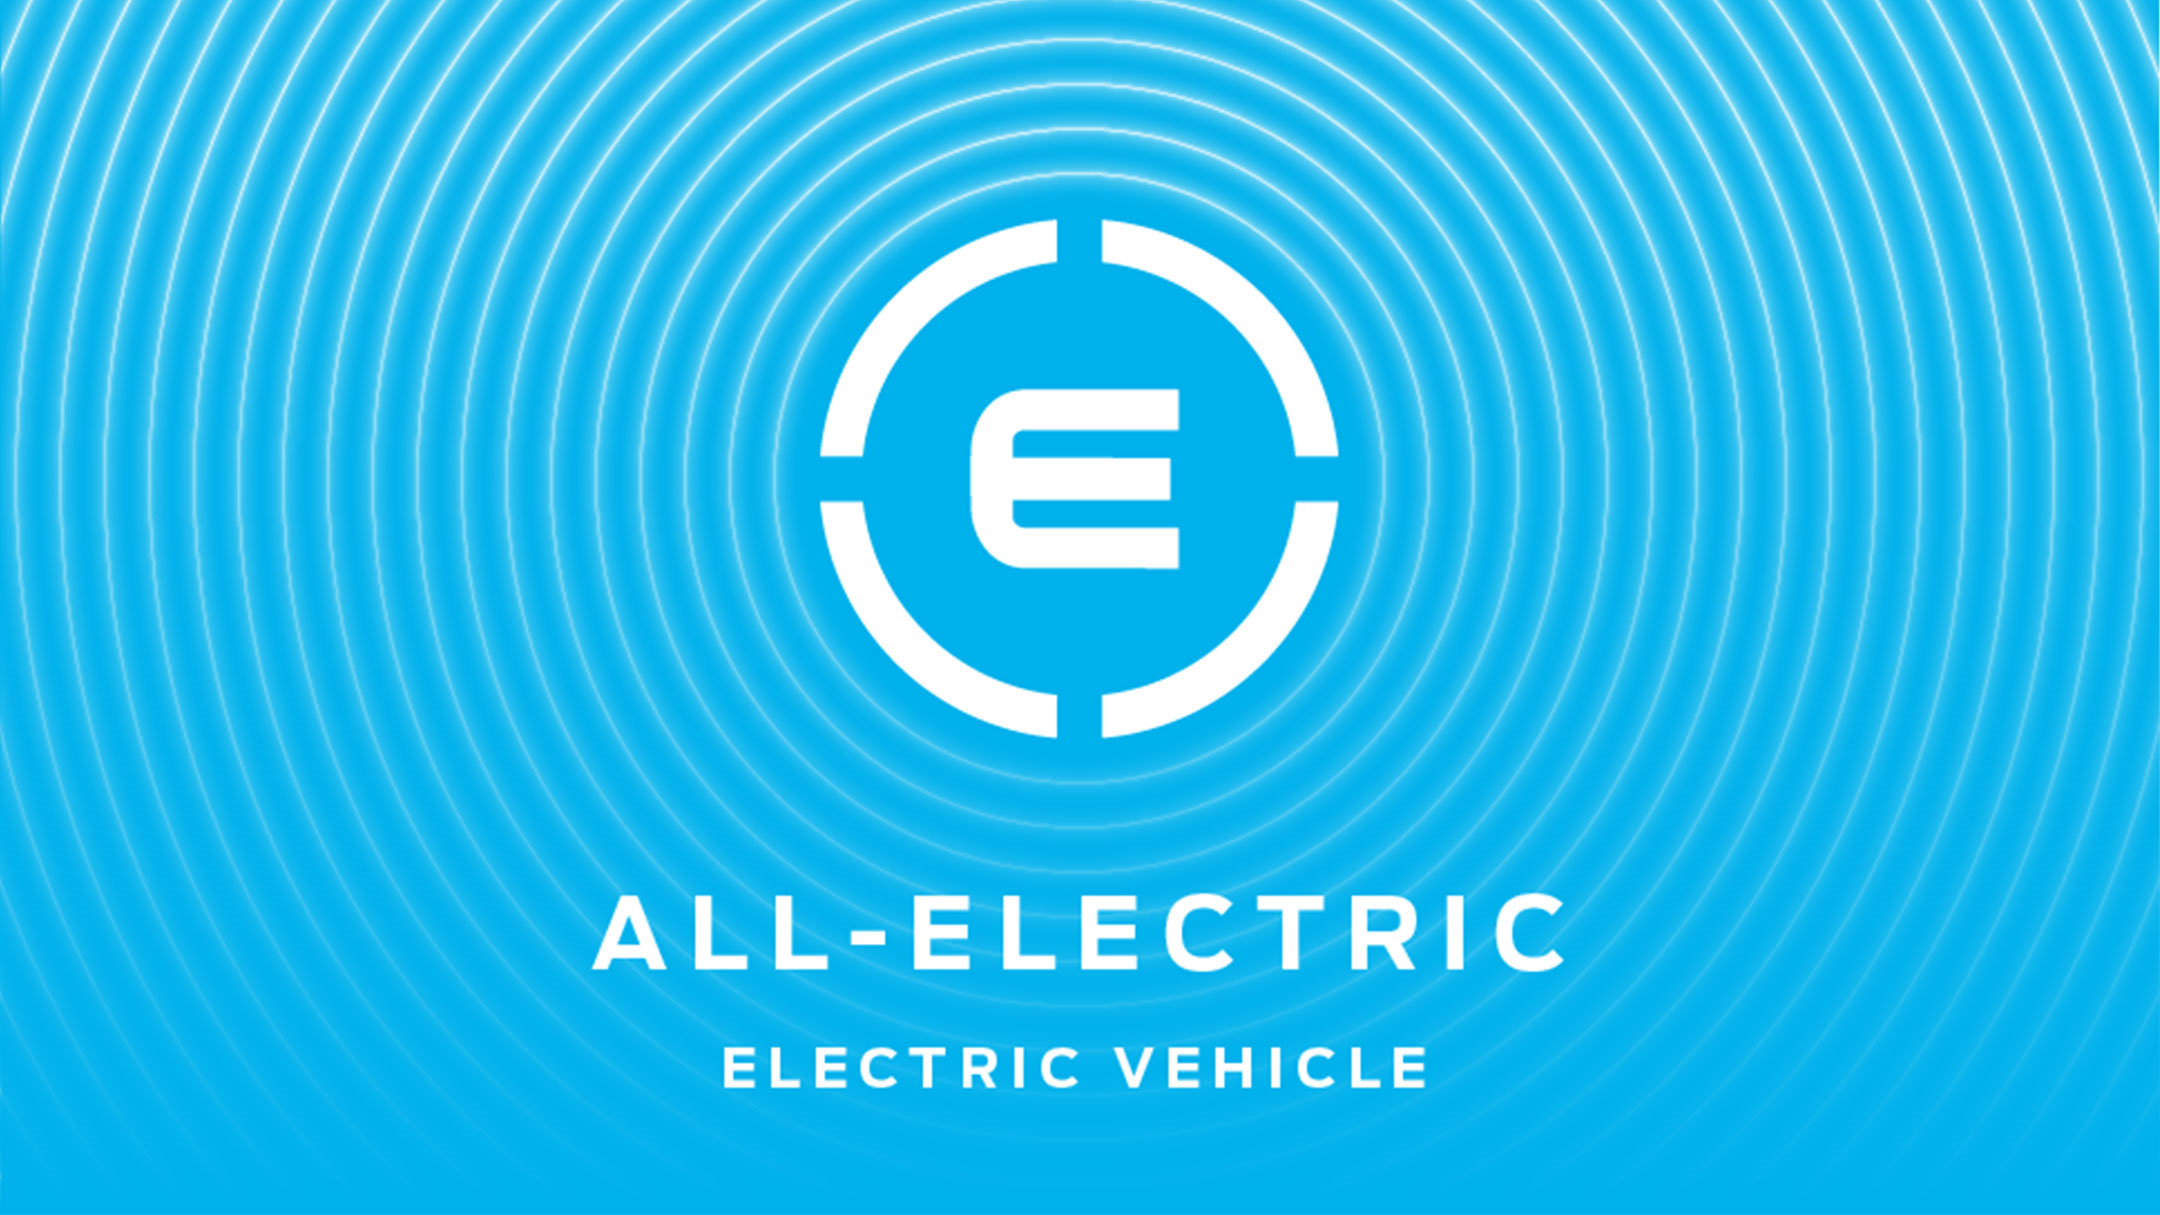 ford-eu-gux-EV_Logos_new_ALL_ELECTRIC_16x9-2160x1215.png